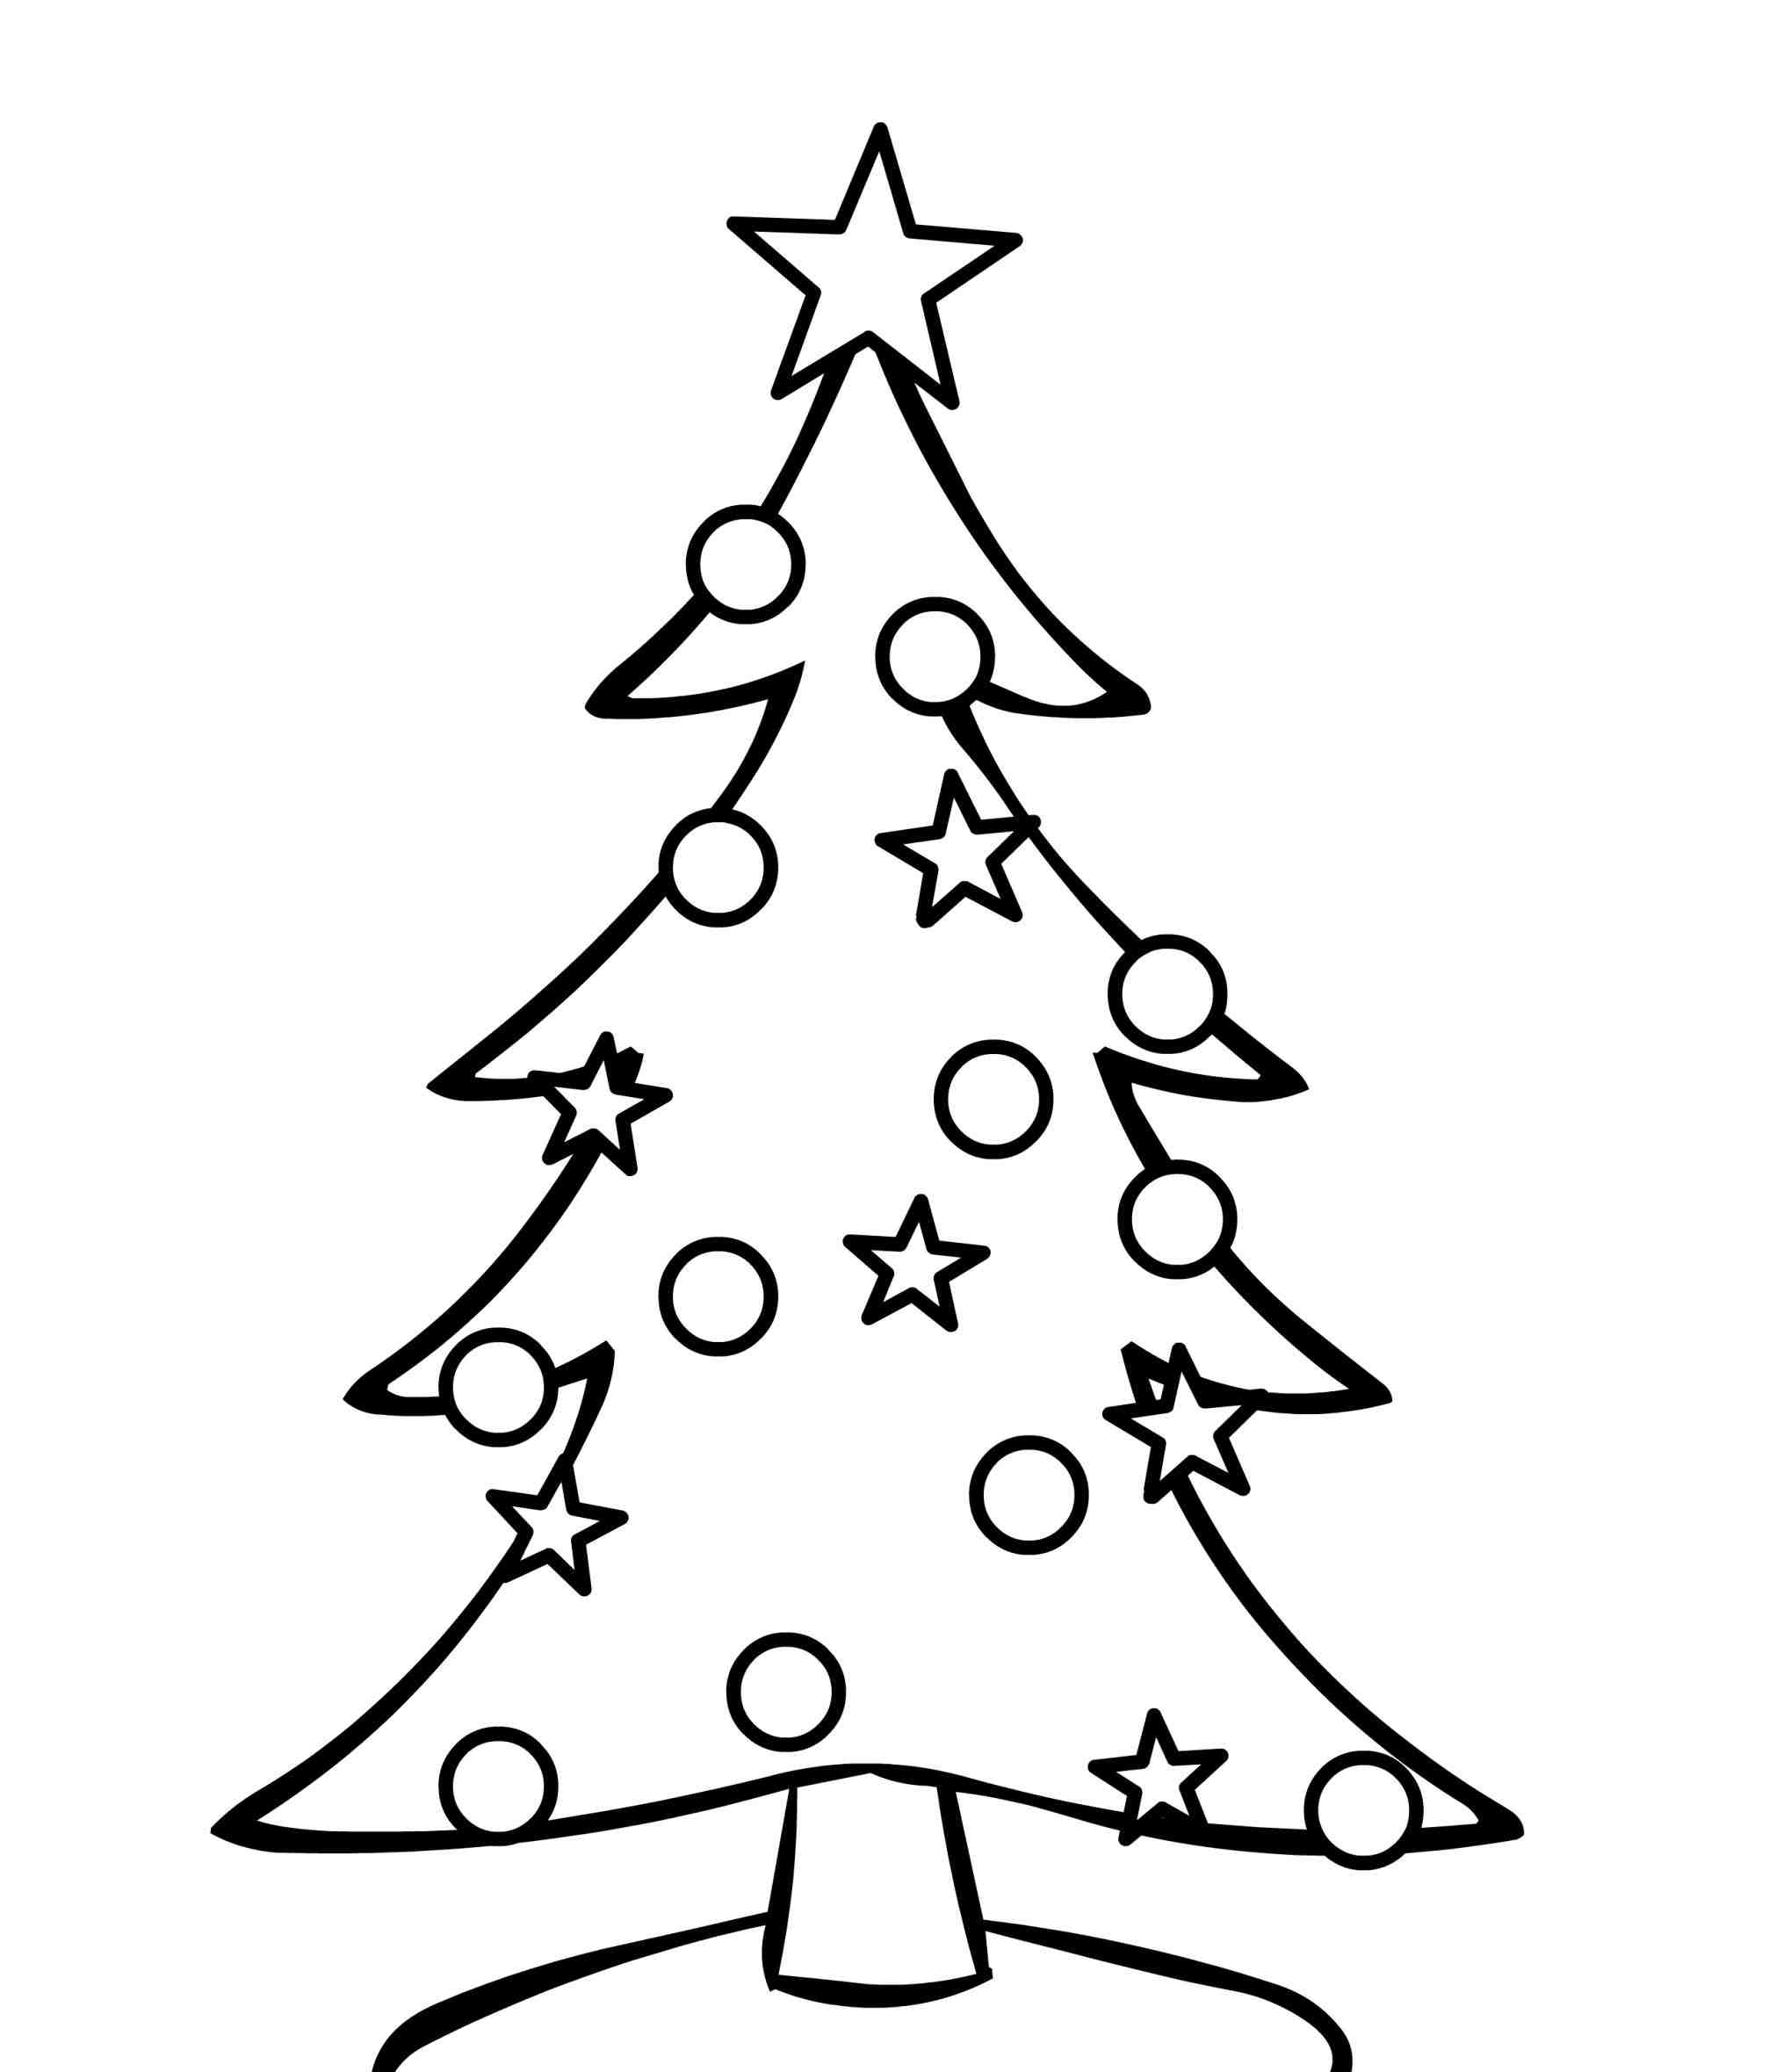 black and white tree drawing free download best black christmas palm tree clip art free palm tree clip art free printables